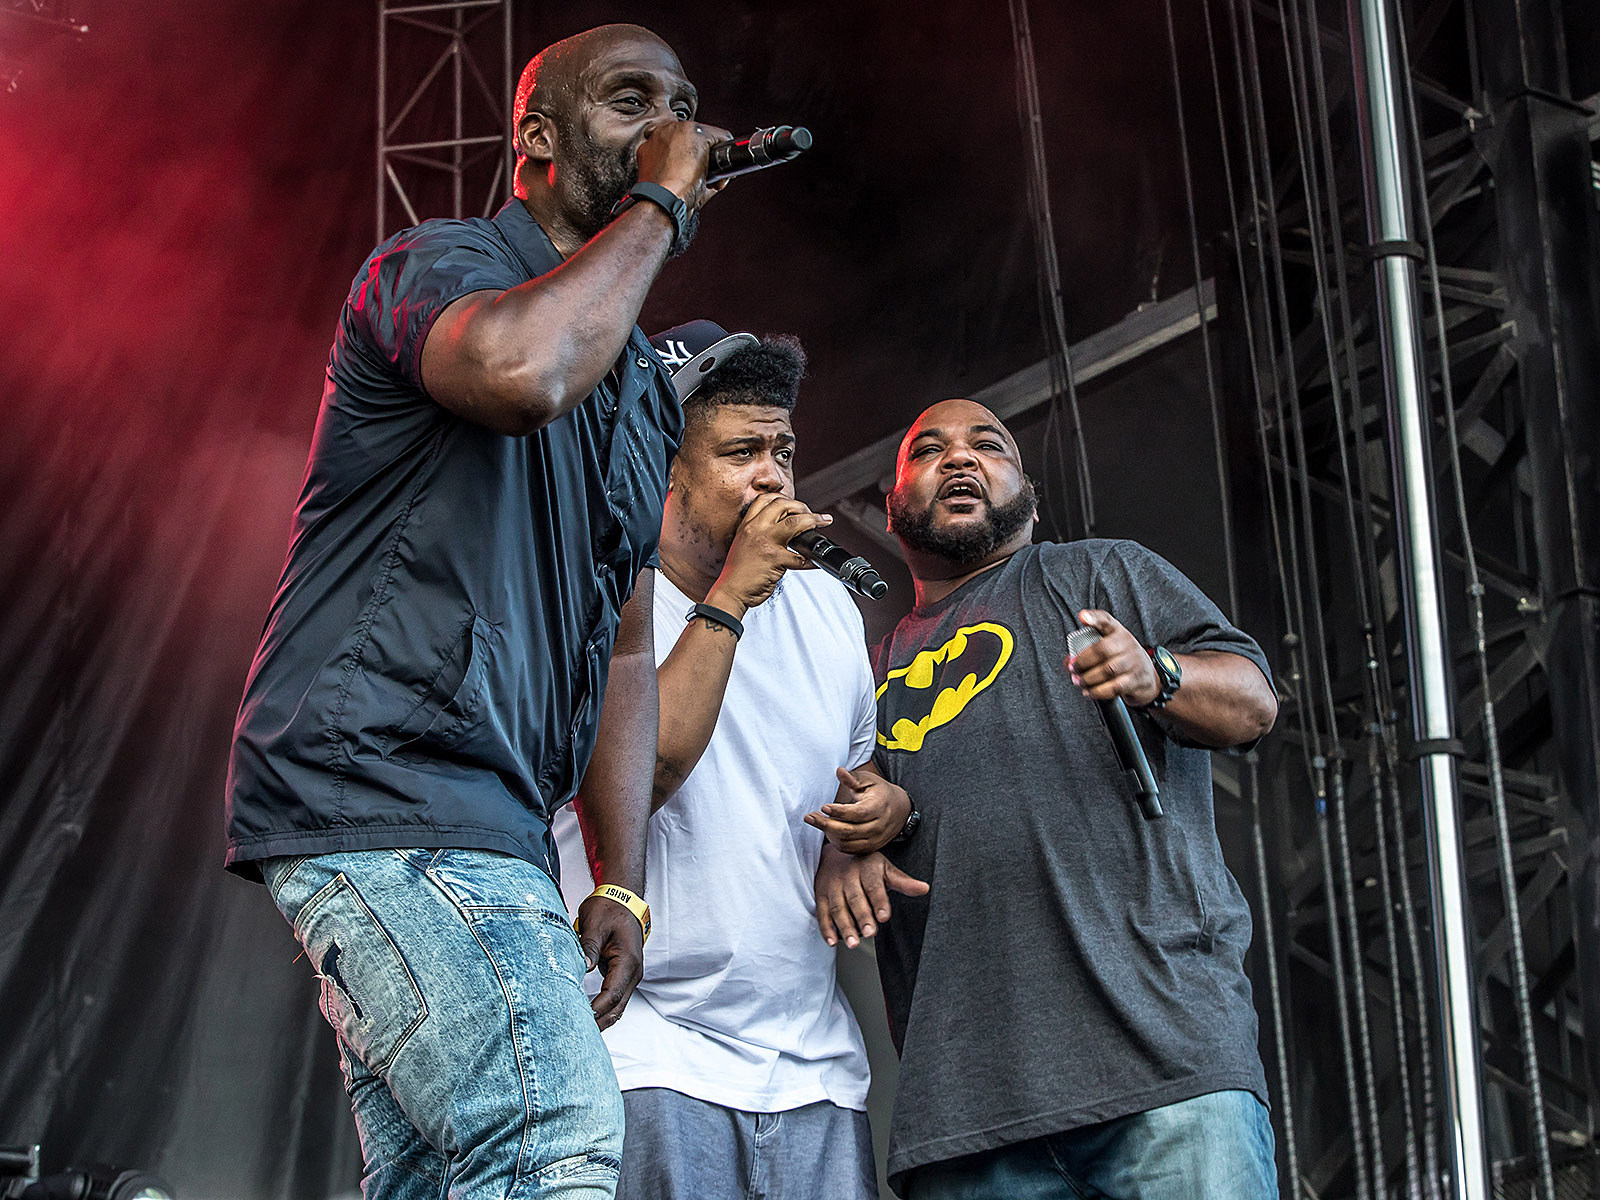 De La Soul unable to reach agreement with Tommy Boy, ask fans not to